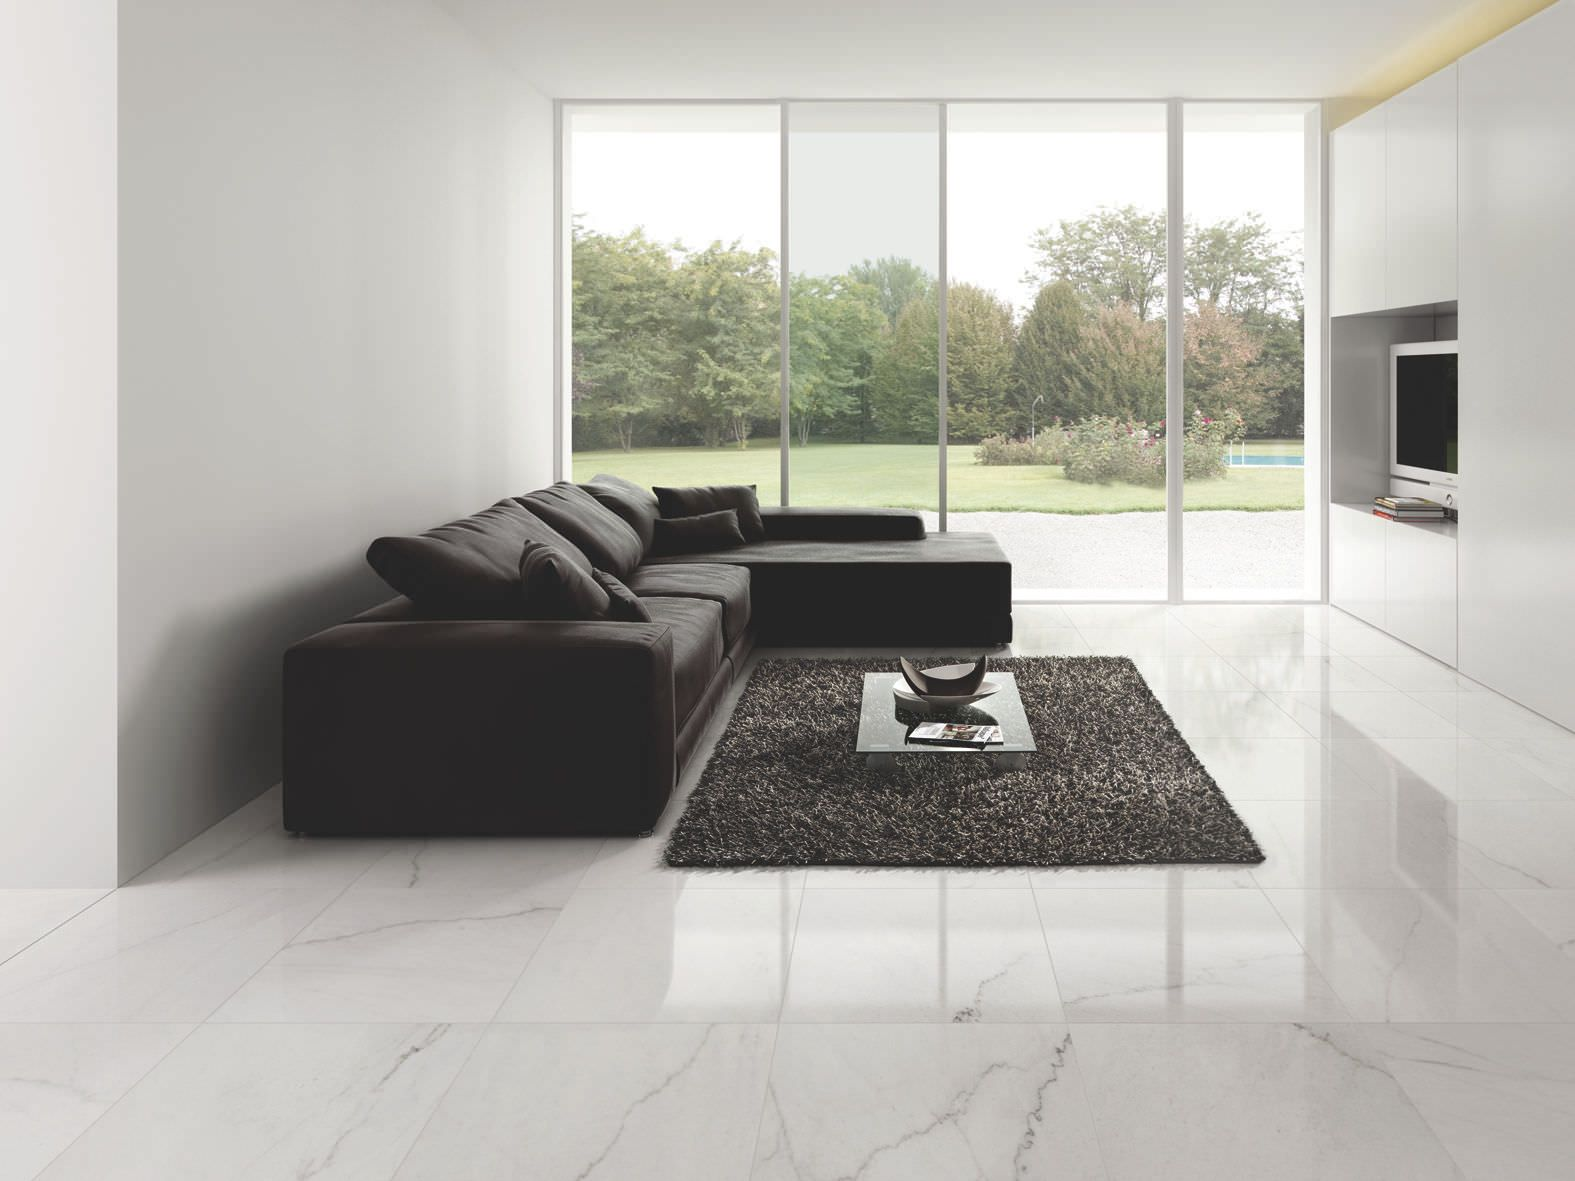 Interior marbles grout lines in porcelain tiles flooring interior marbles grout lines in porcelain tiles flooring luxurious black rug comfy black sofa a doublecrazyfo Images